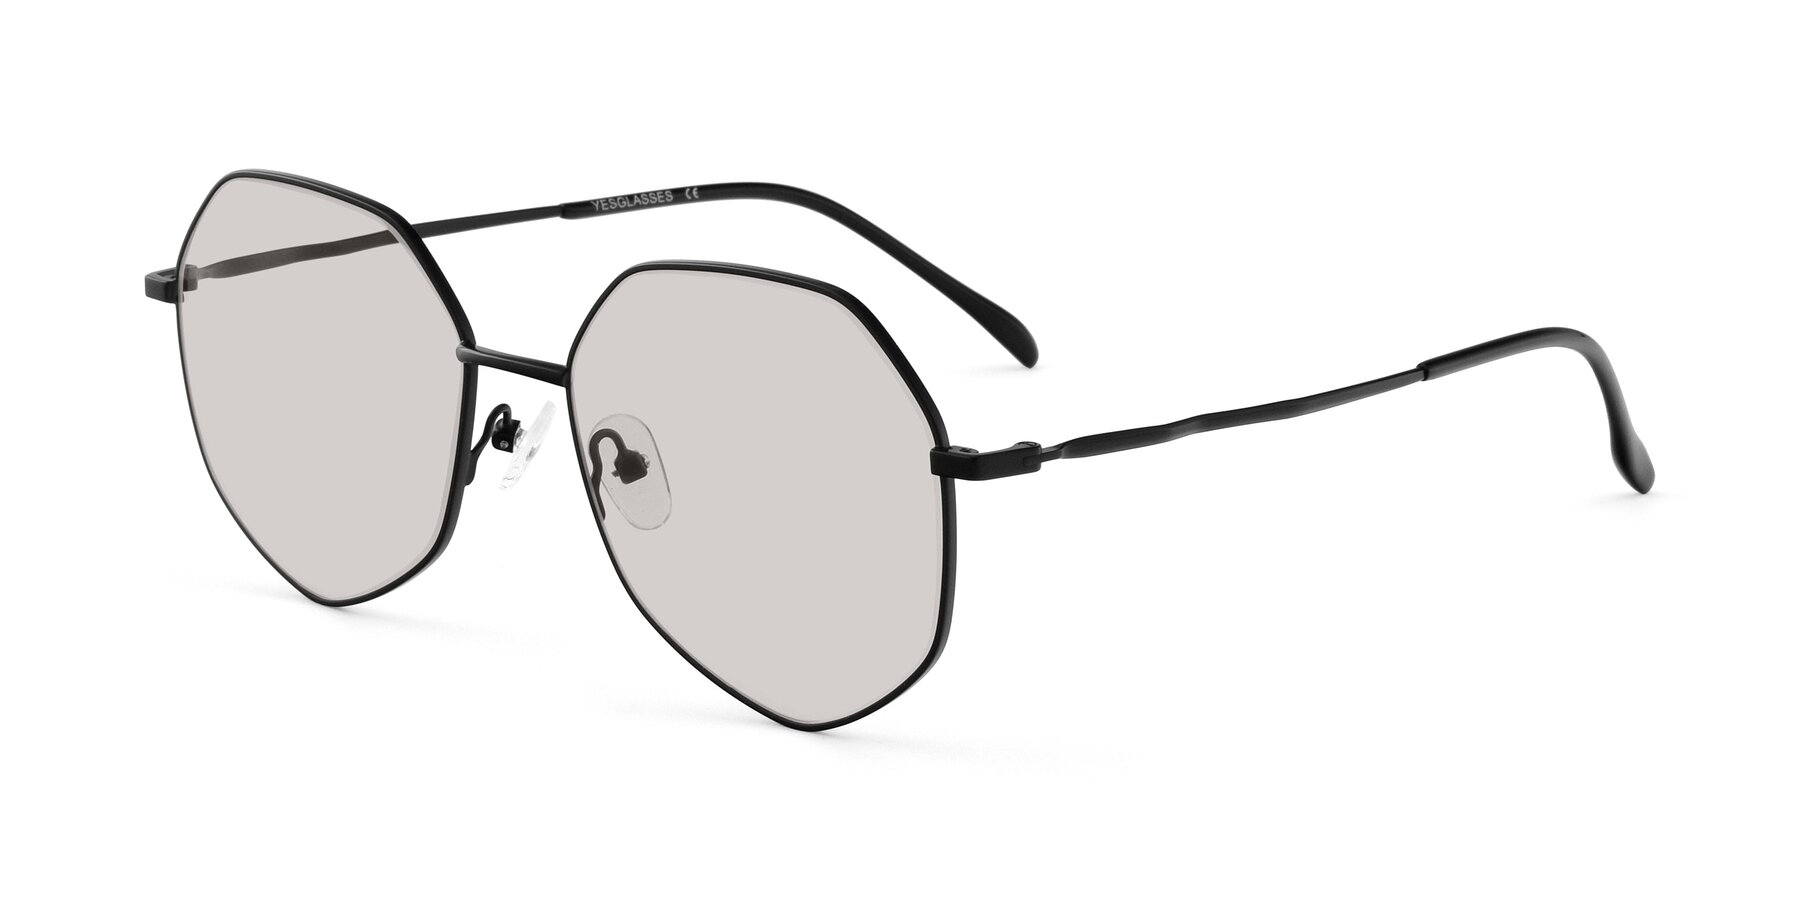 Angle of Sunshine in Black with Light Brown Tinted Lenses